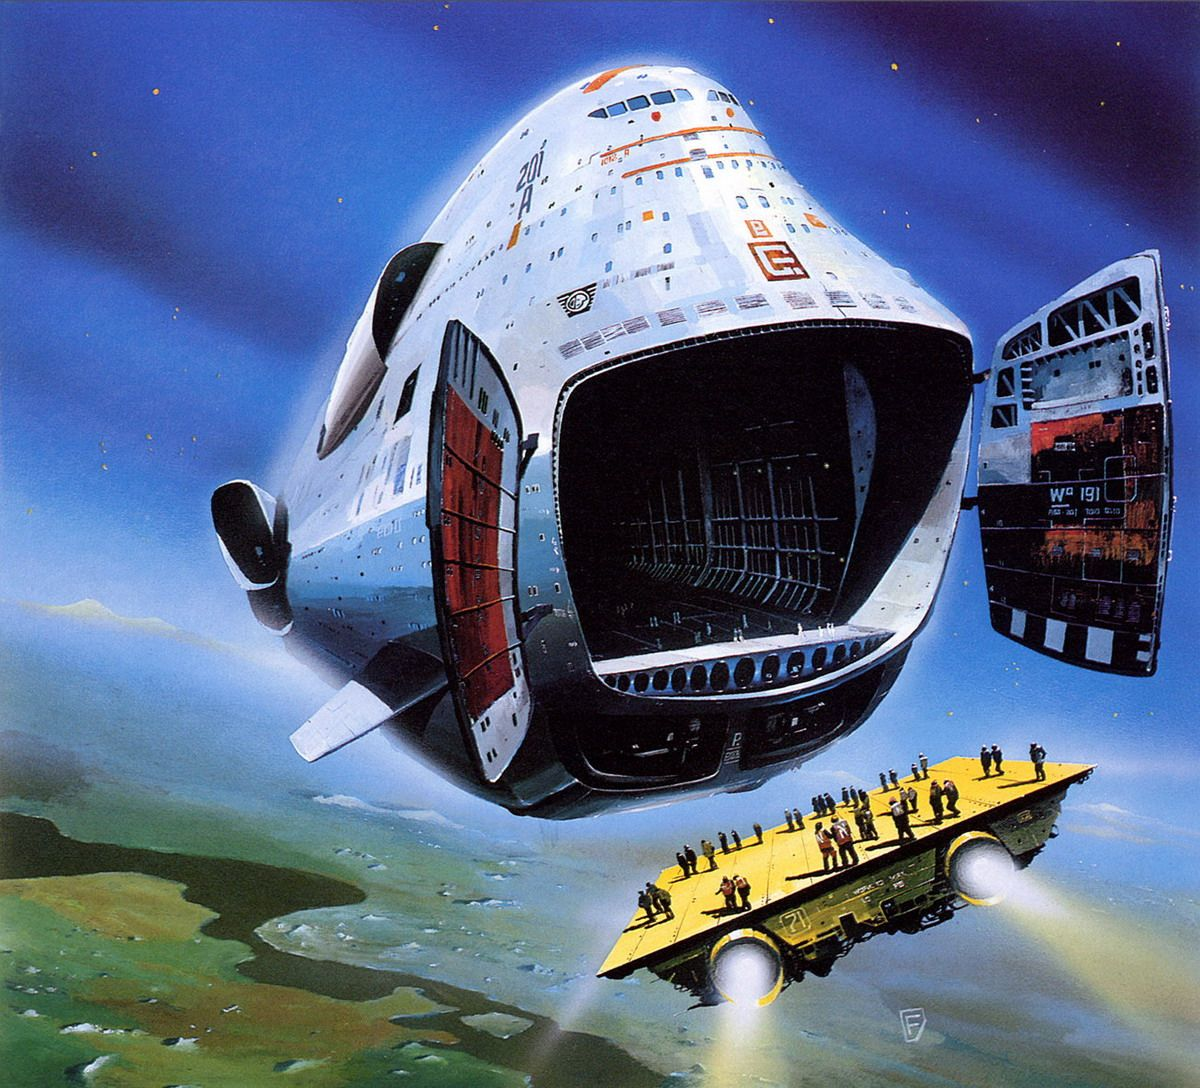 70s Sci Fi Art Chris Foss: Art, 70s Sci Fi Art